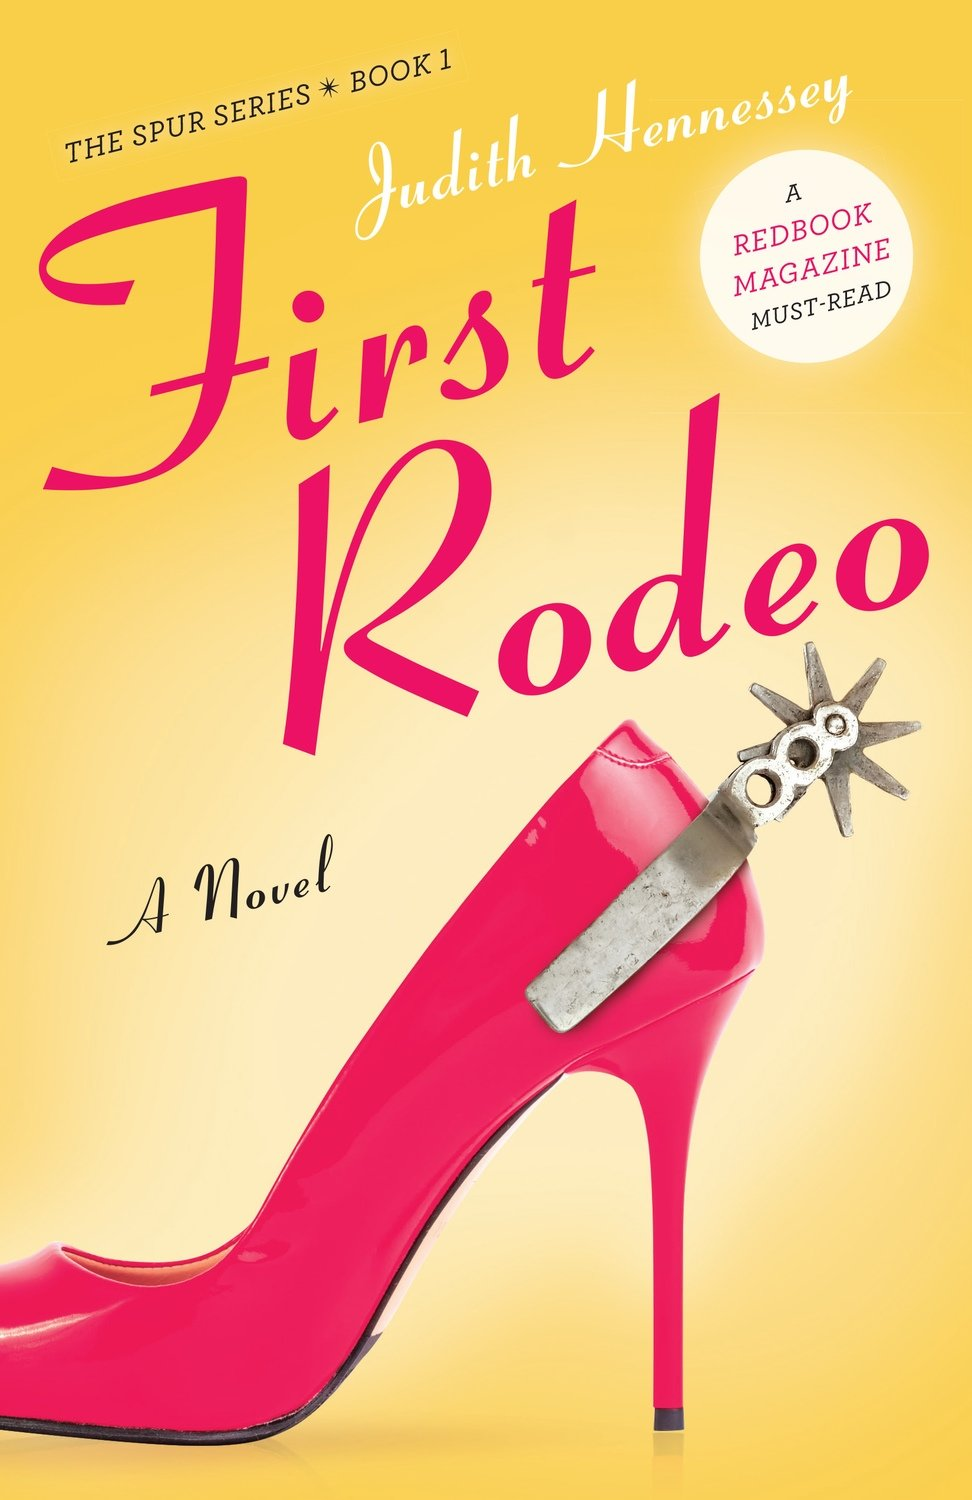 First Rodeo, a novel by Judith Hennessey, signed by the author